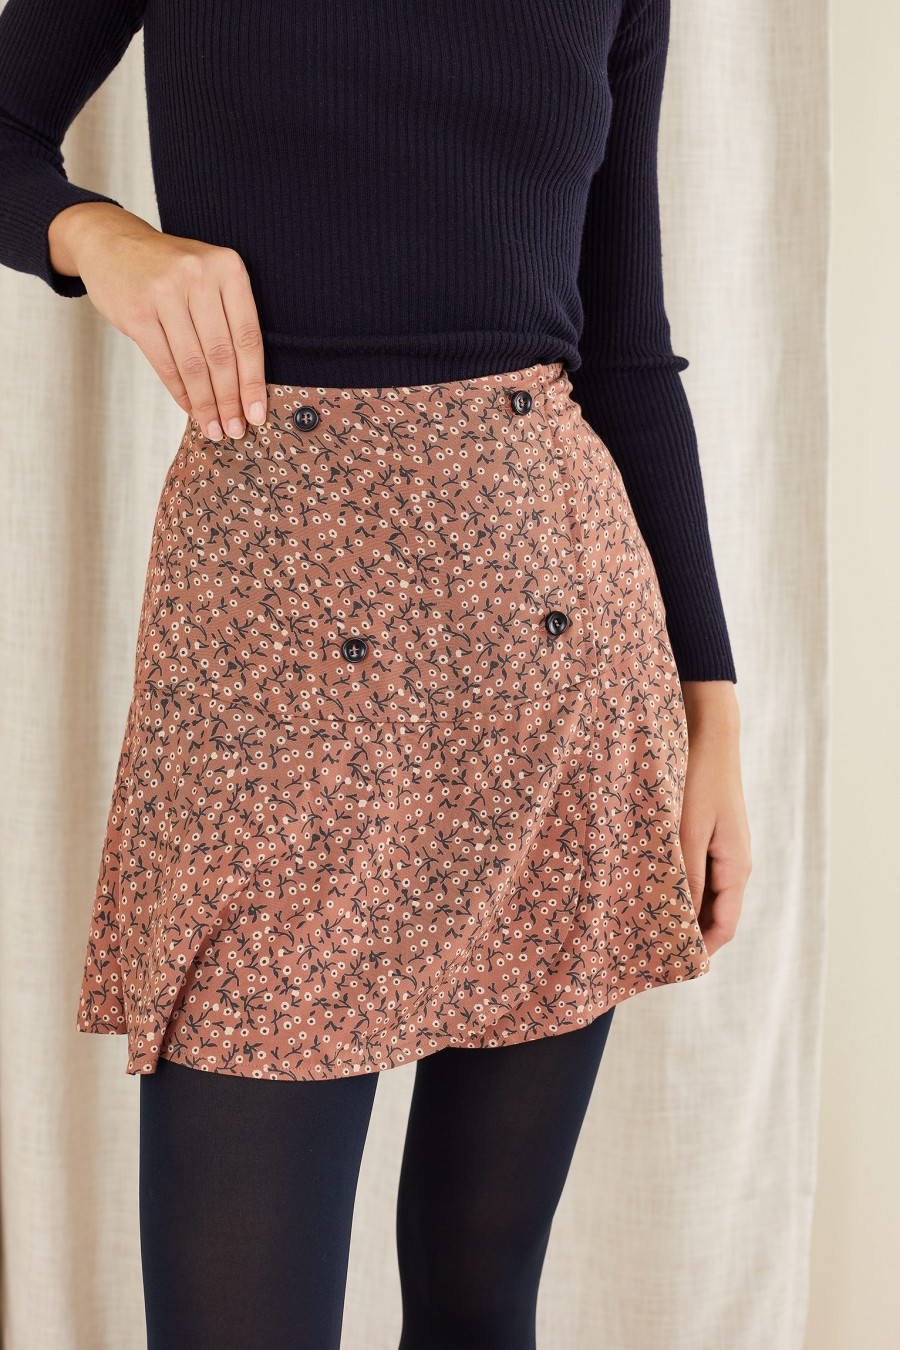 ancient pink mini skirt with black buttons